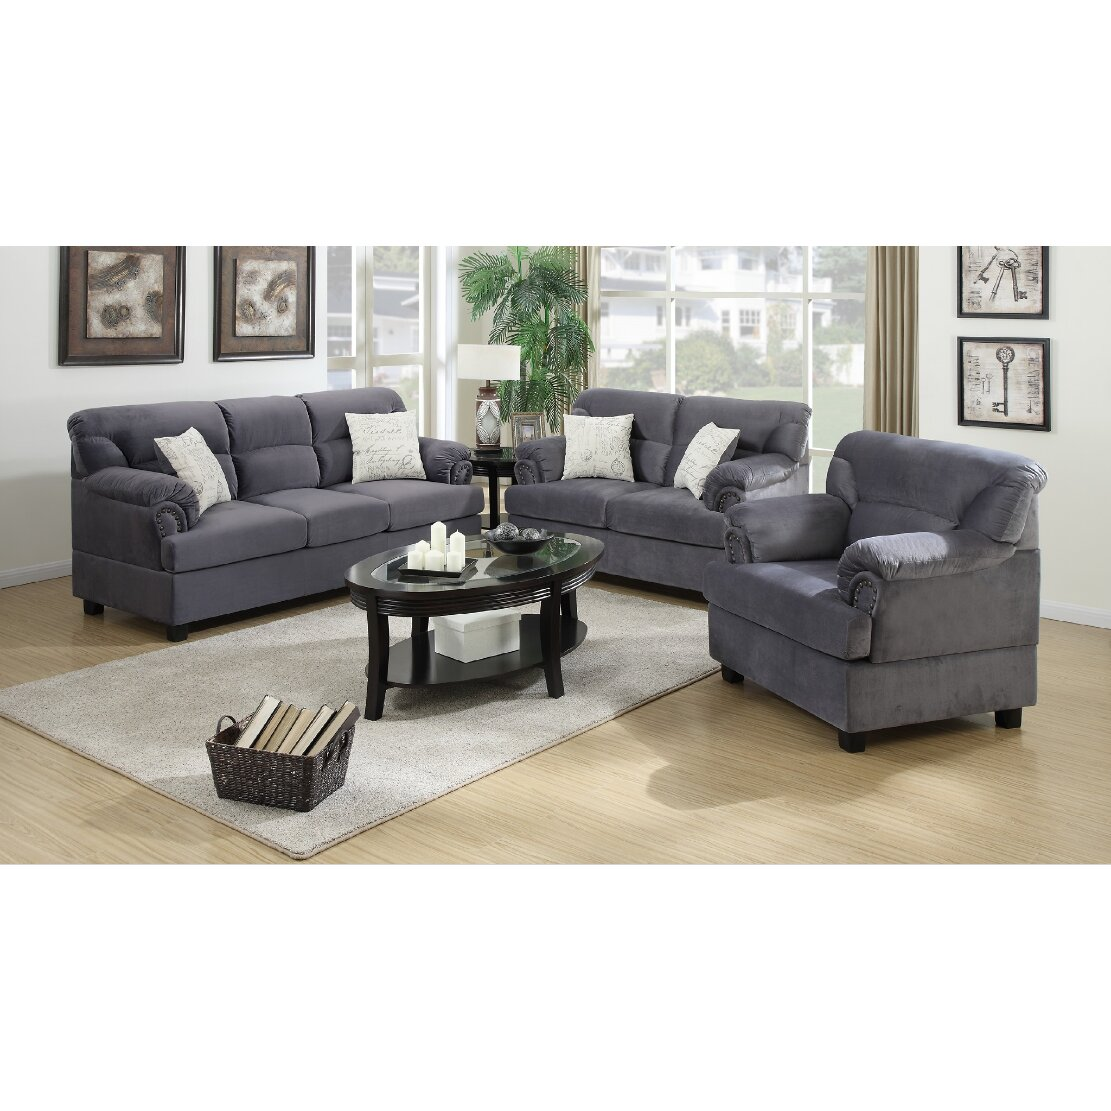 A j homes studio penny 3 piece living room set wayfair for 3 piece living room set